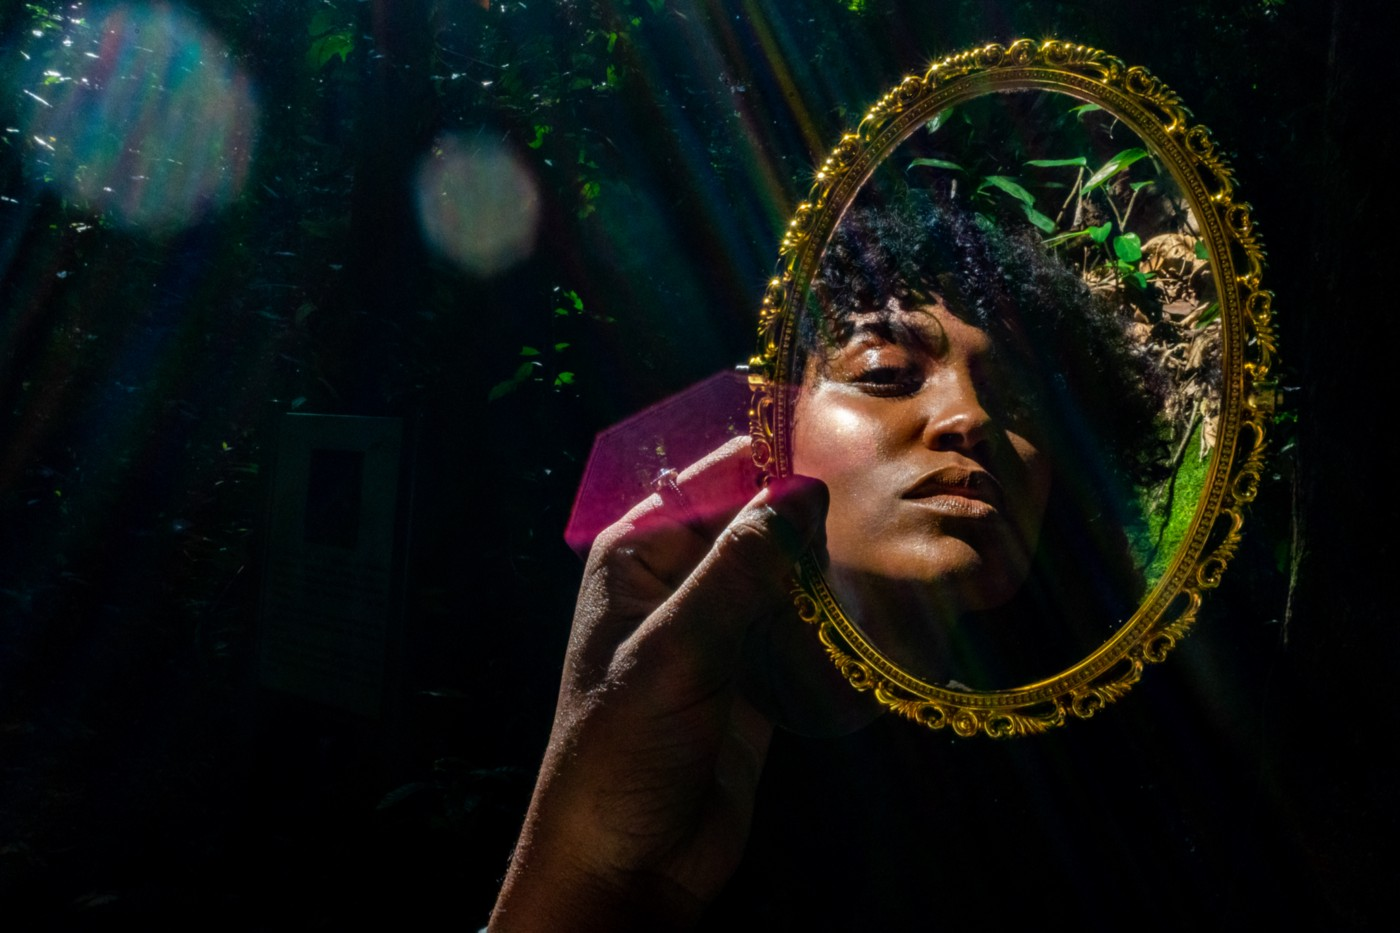 Young Black woman holding up and looking into a gilded mirror in the forest.